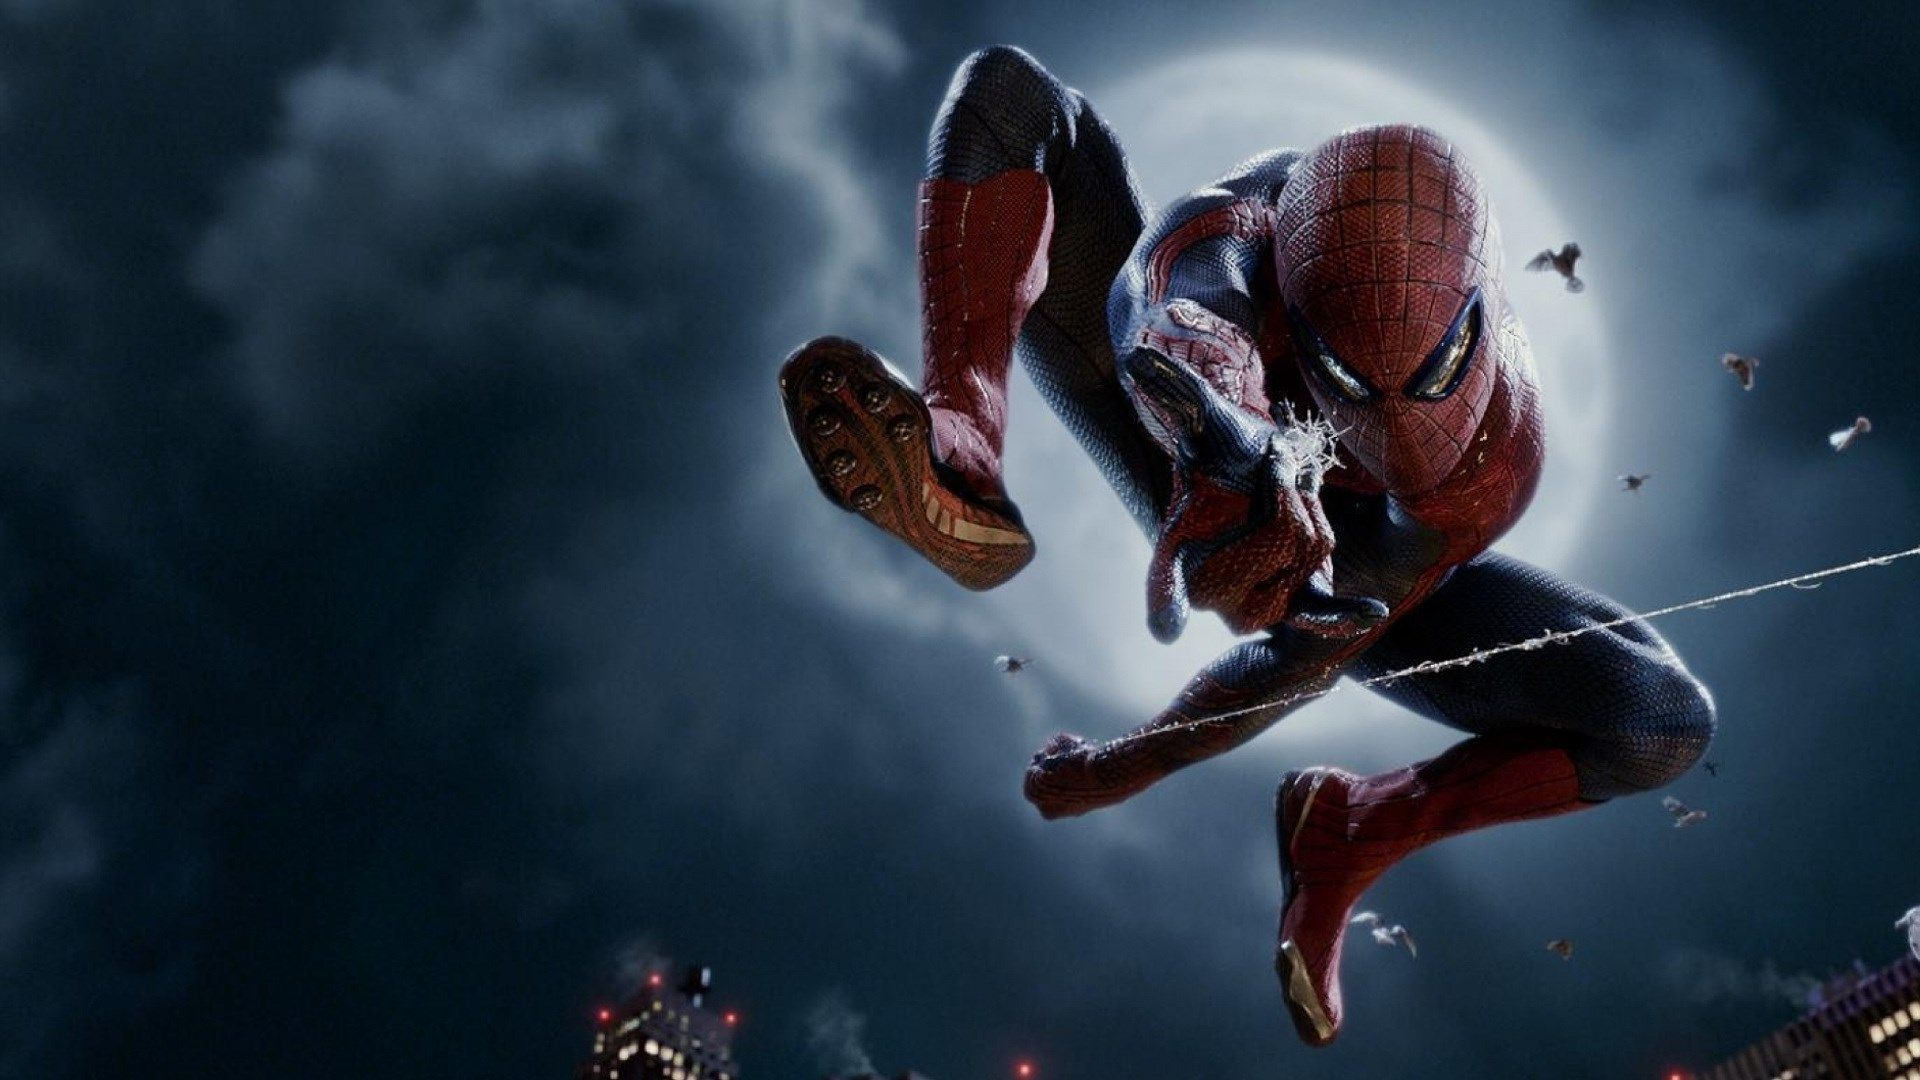 Hd Wallpaper The Amazing Spider Man 1920x1080 246 Kb